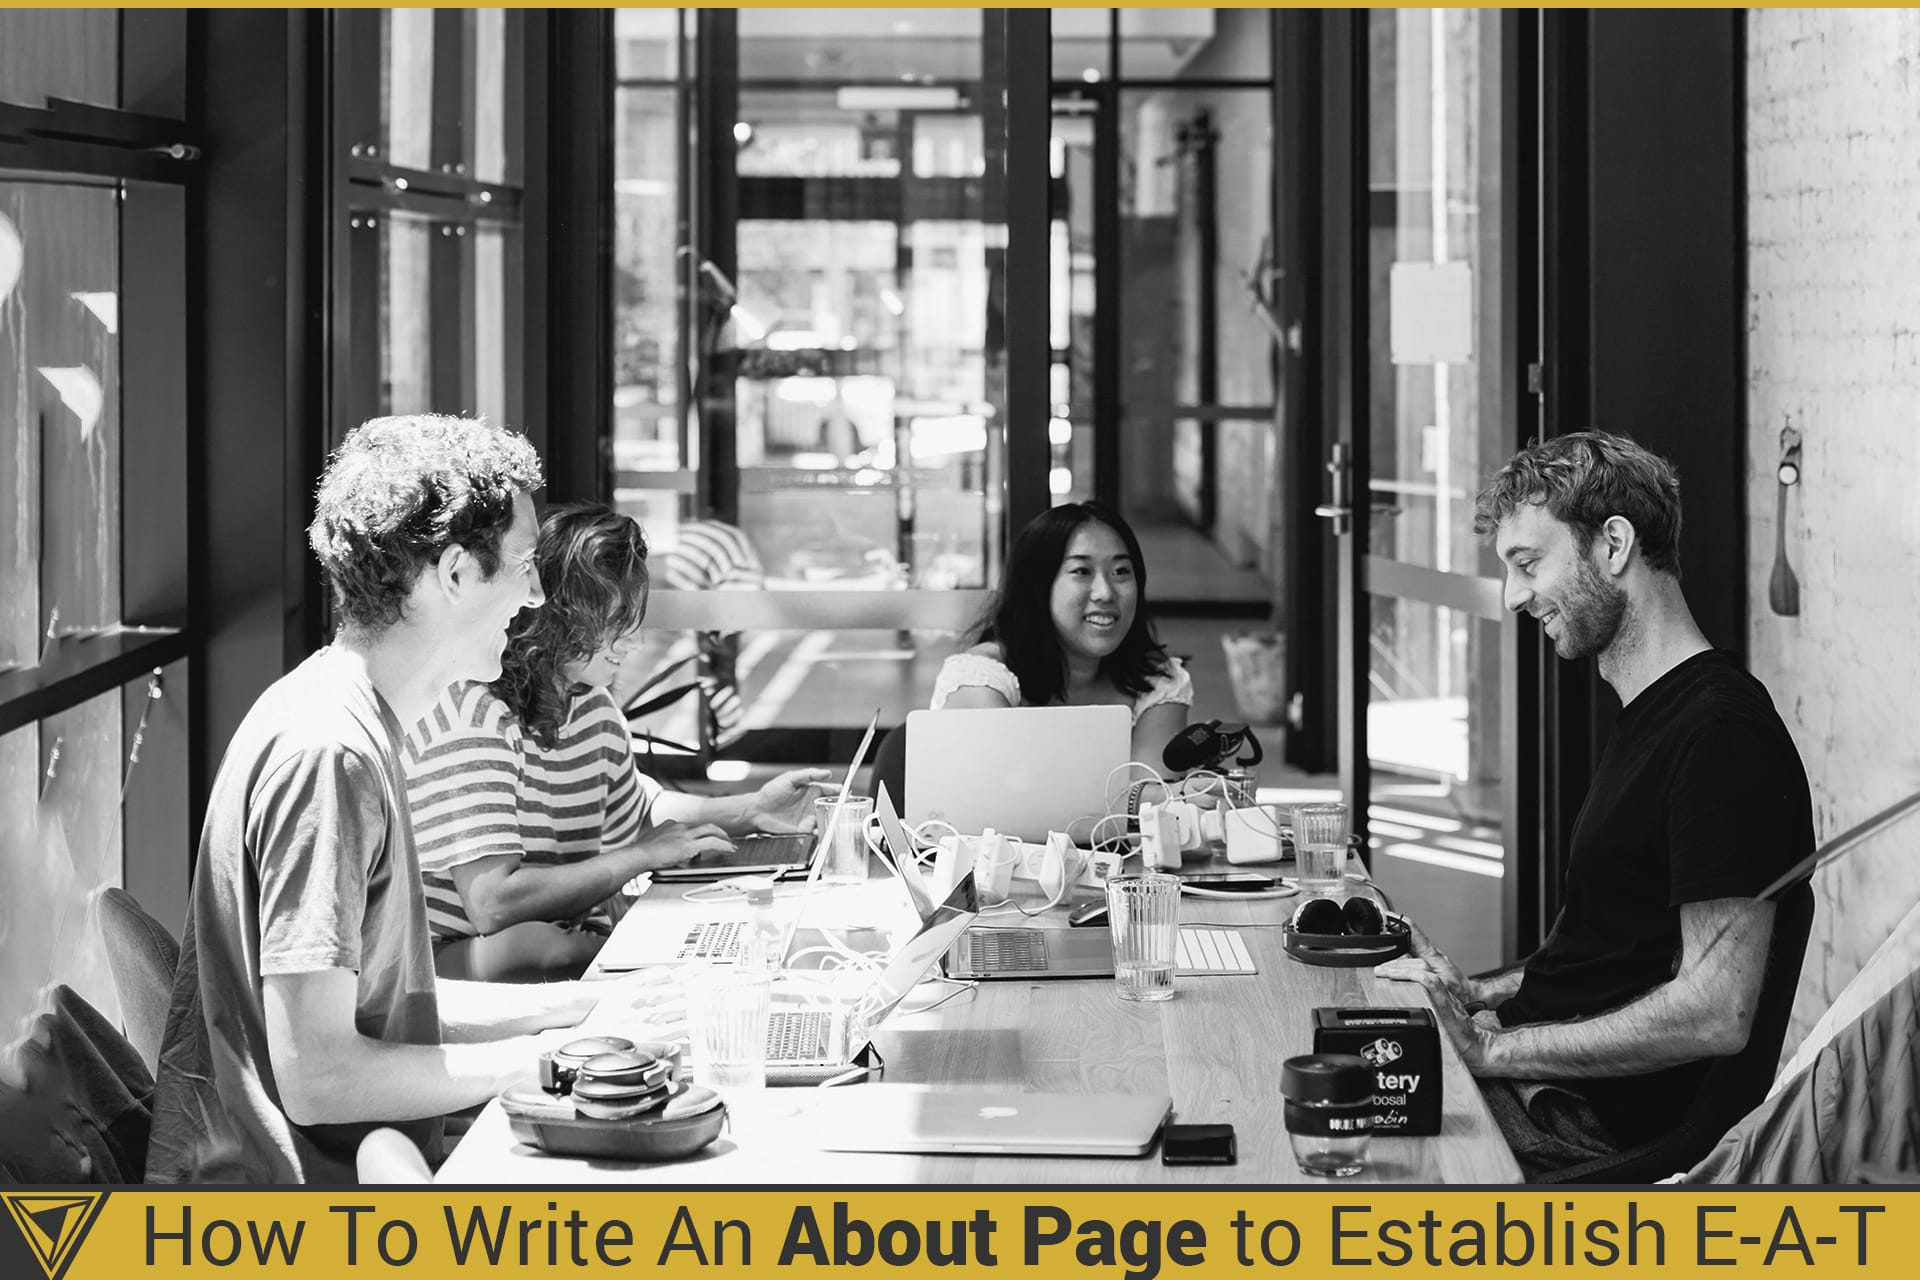 How to write an About Page to establish EAT